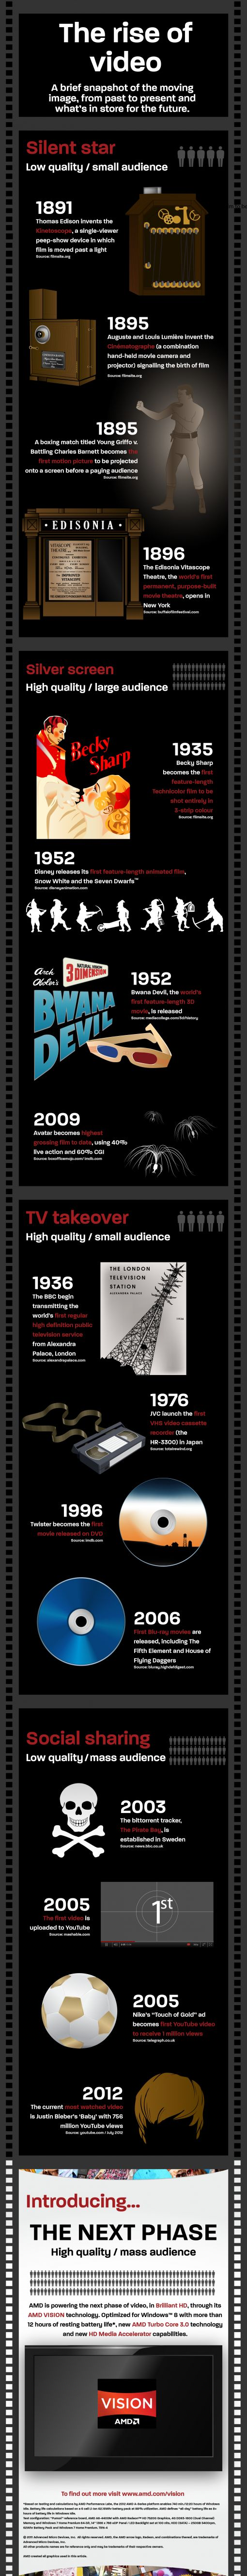 opkomst-video-infographic